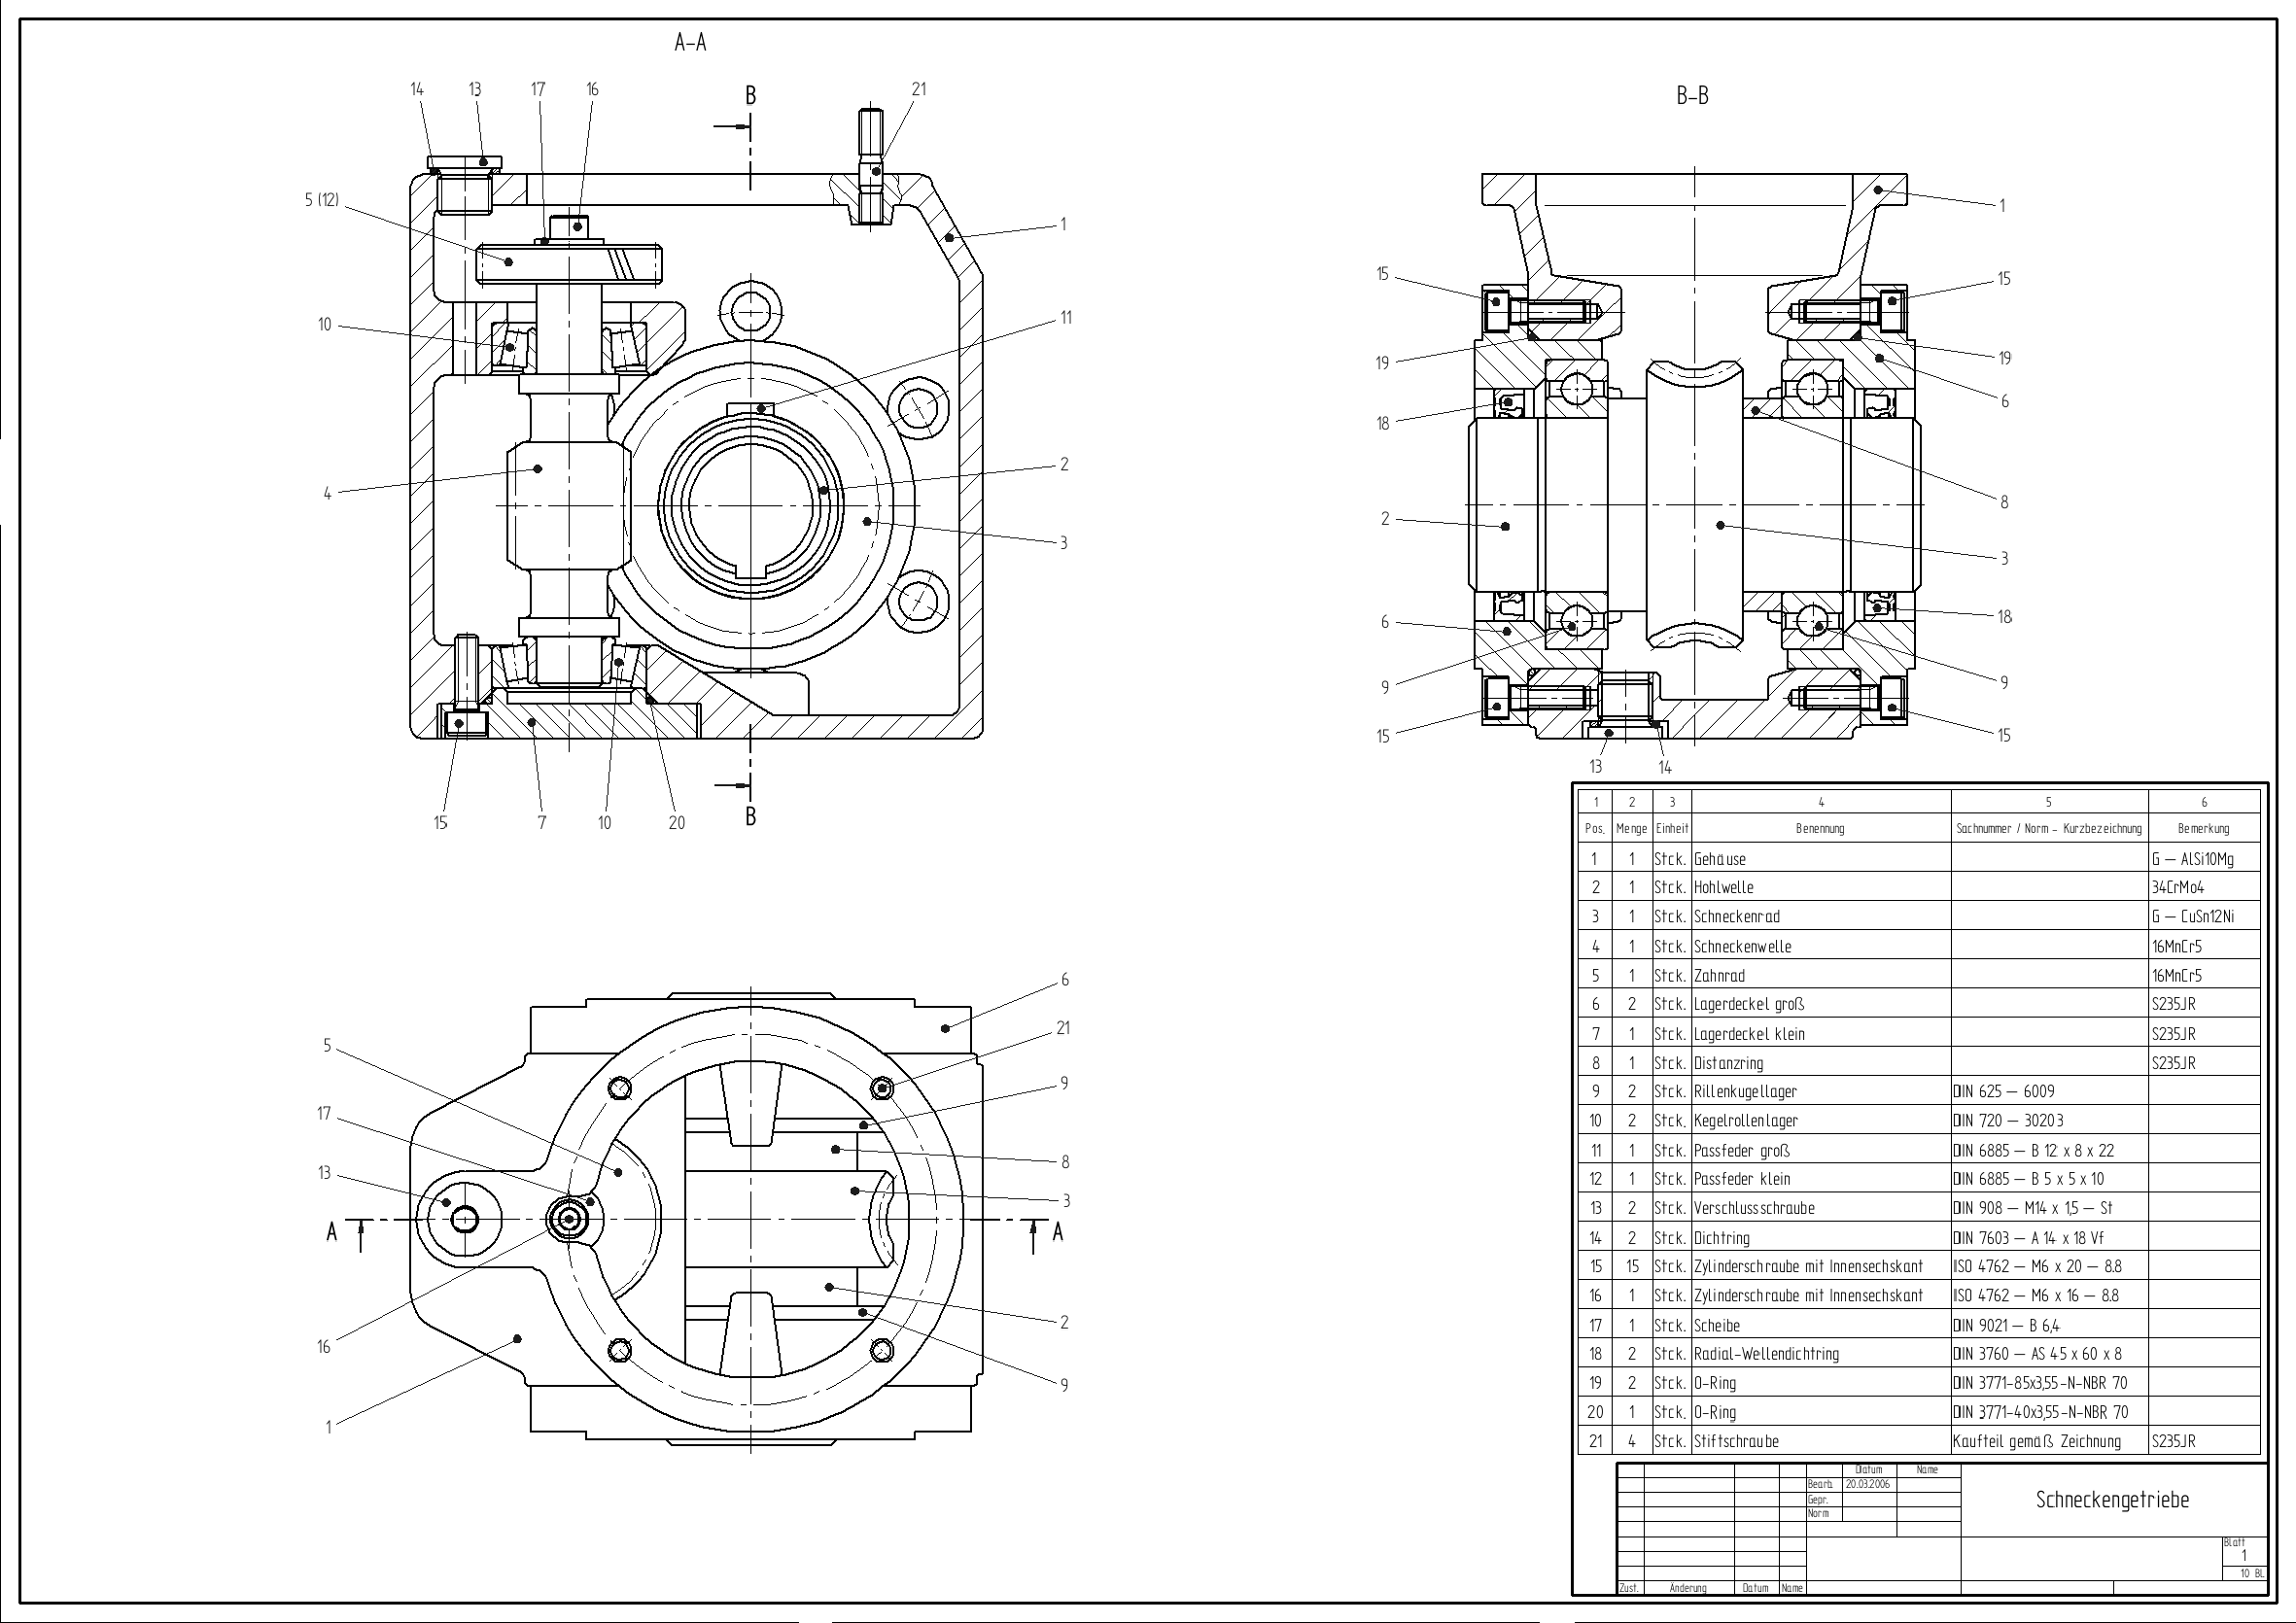 diagramatic structure of a vehicle engine